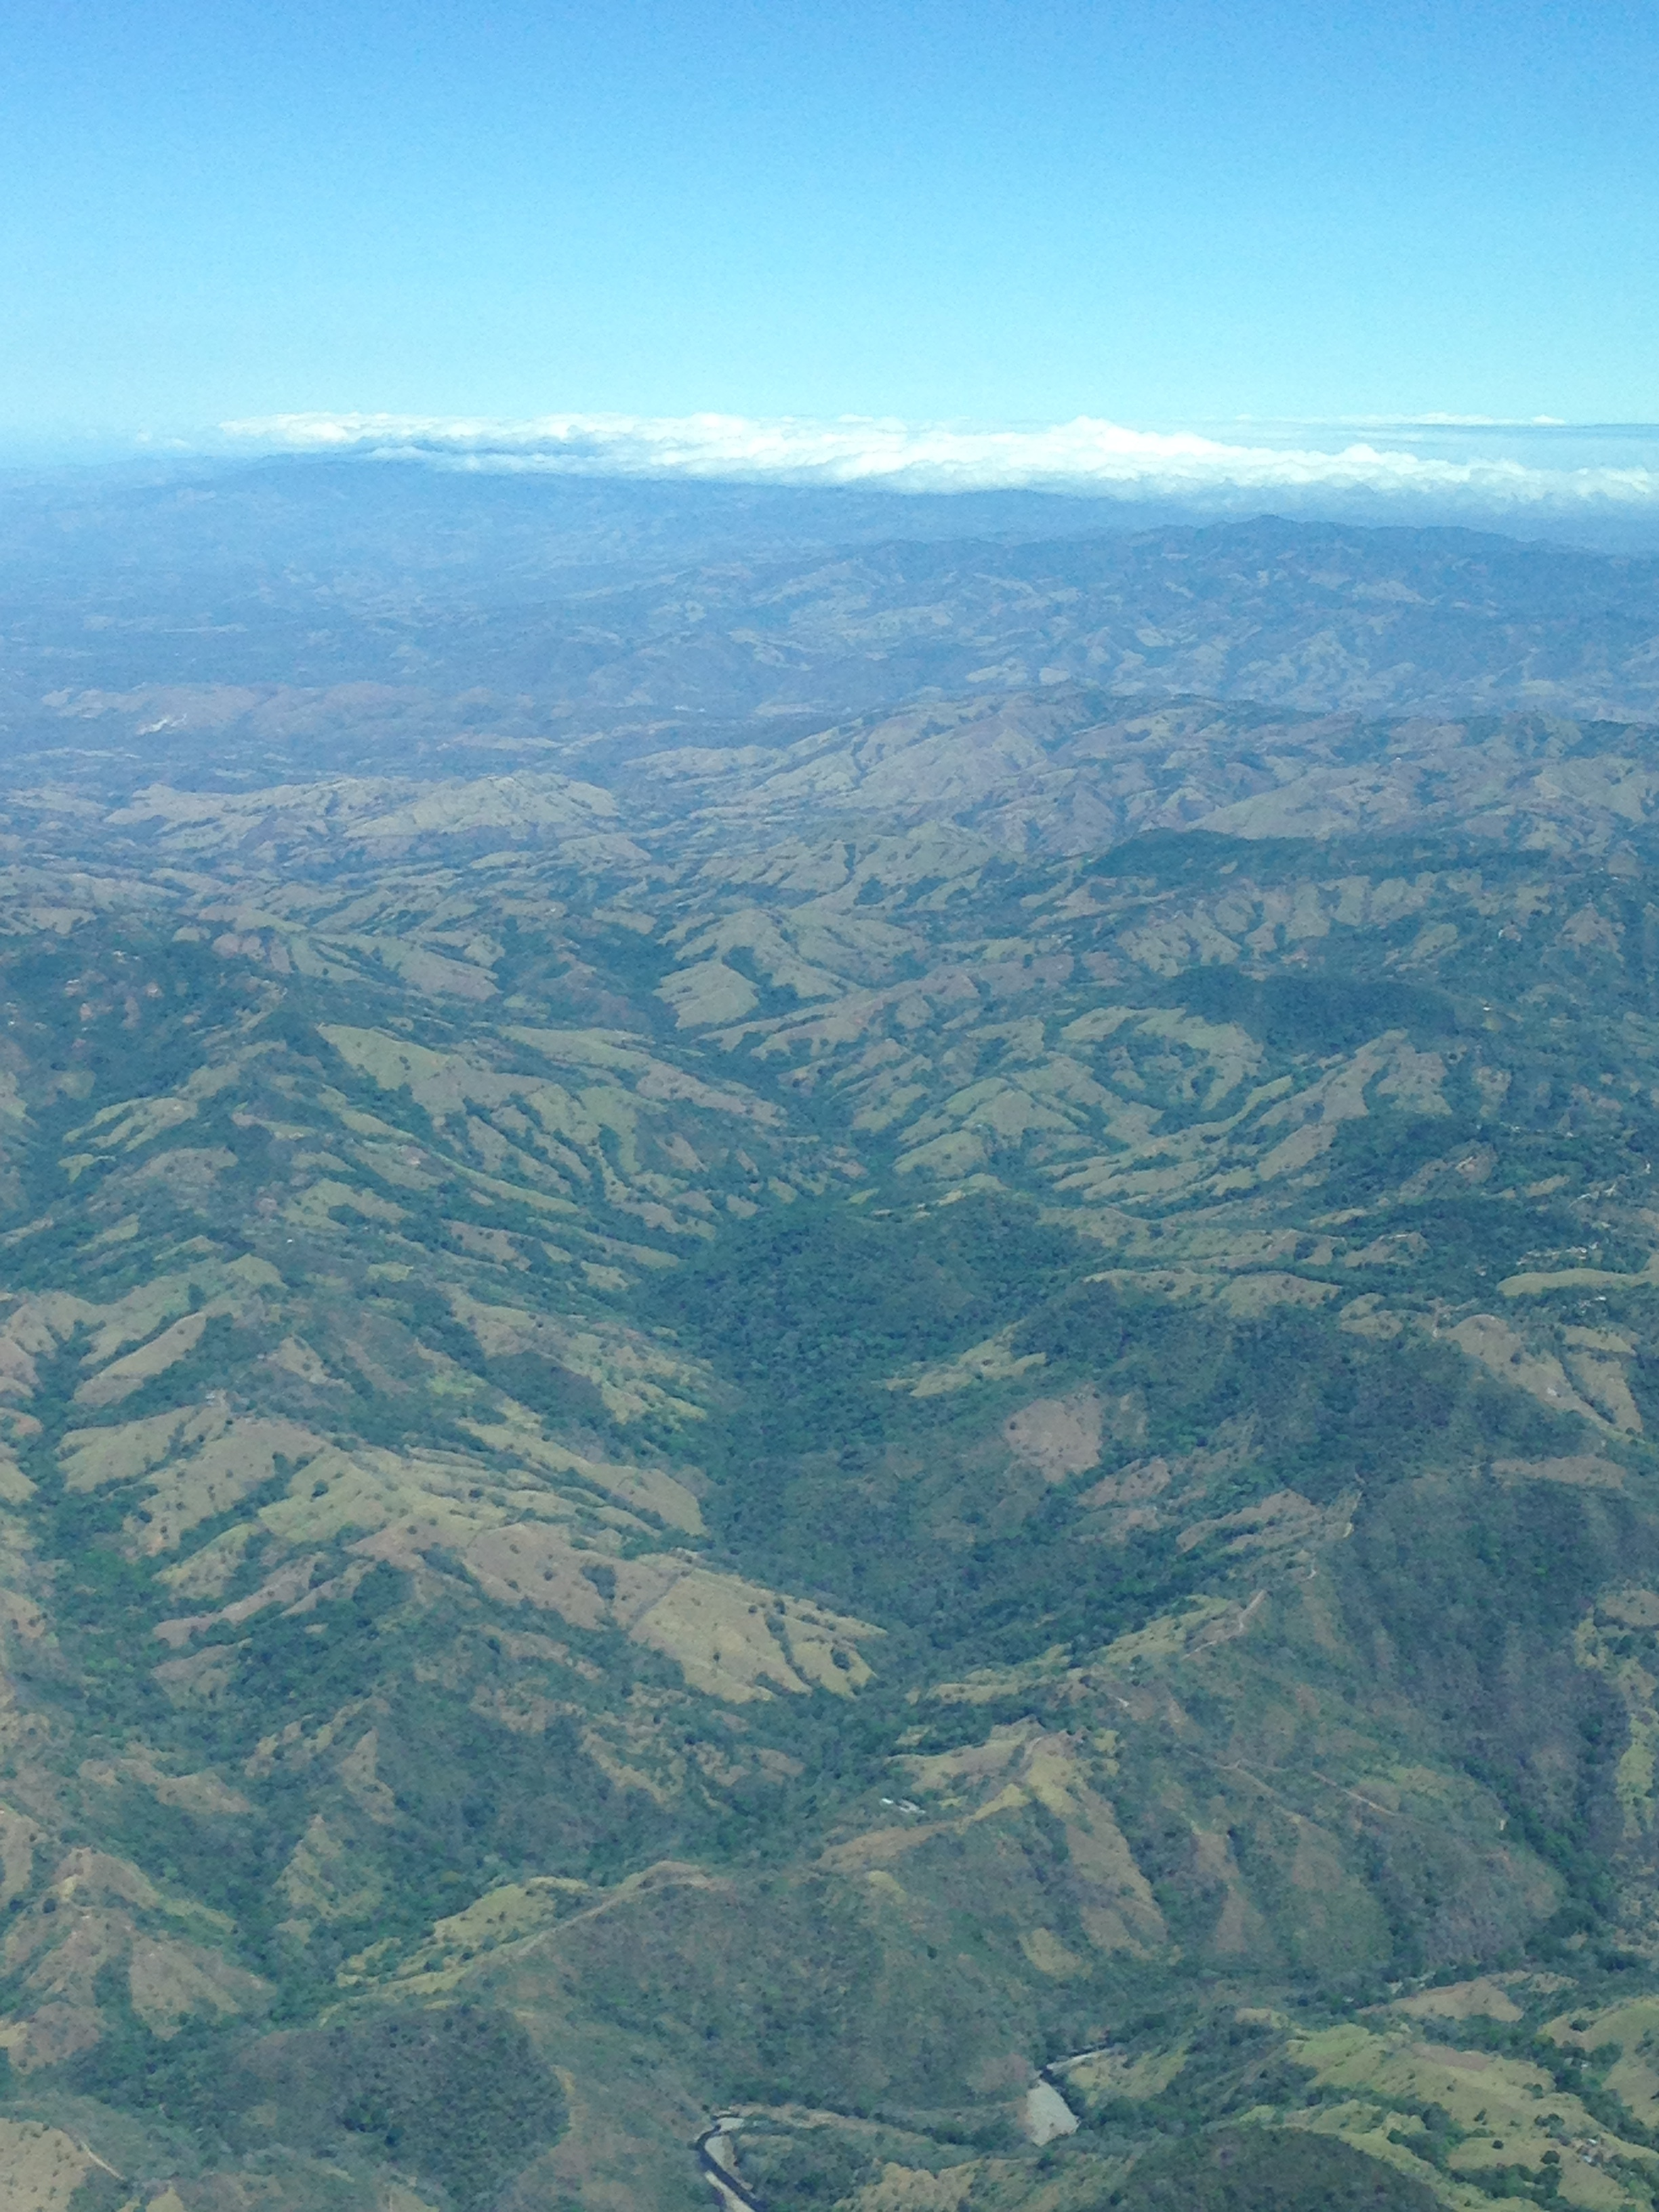 Flying over the highlands in small plane is one of the highlights of travel around Costa Rica.